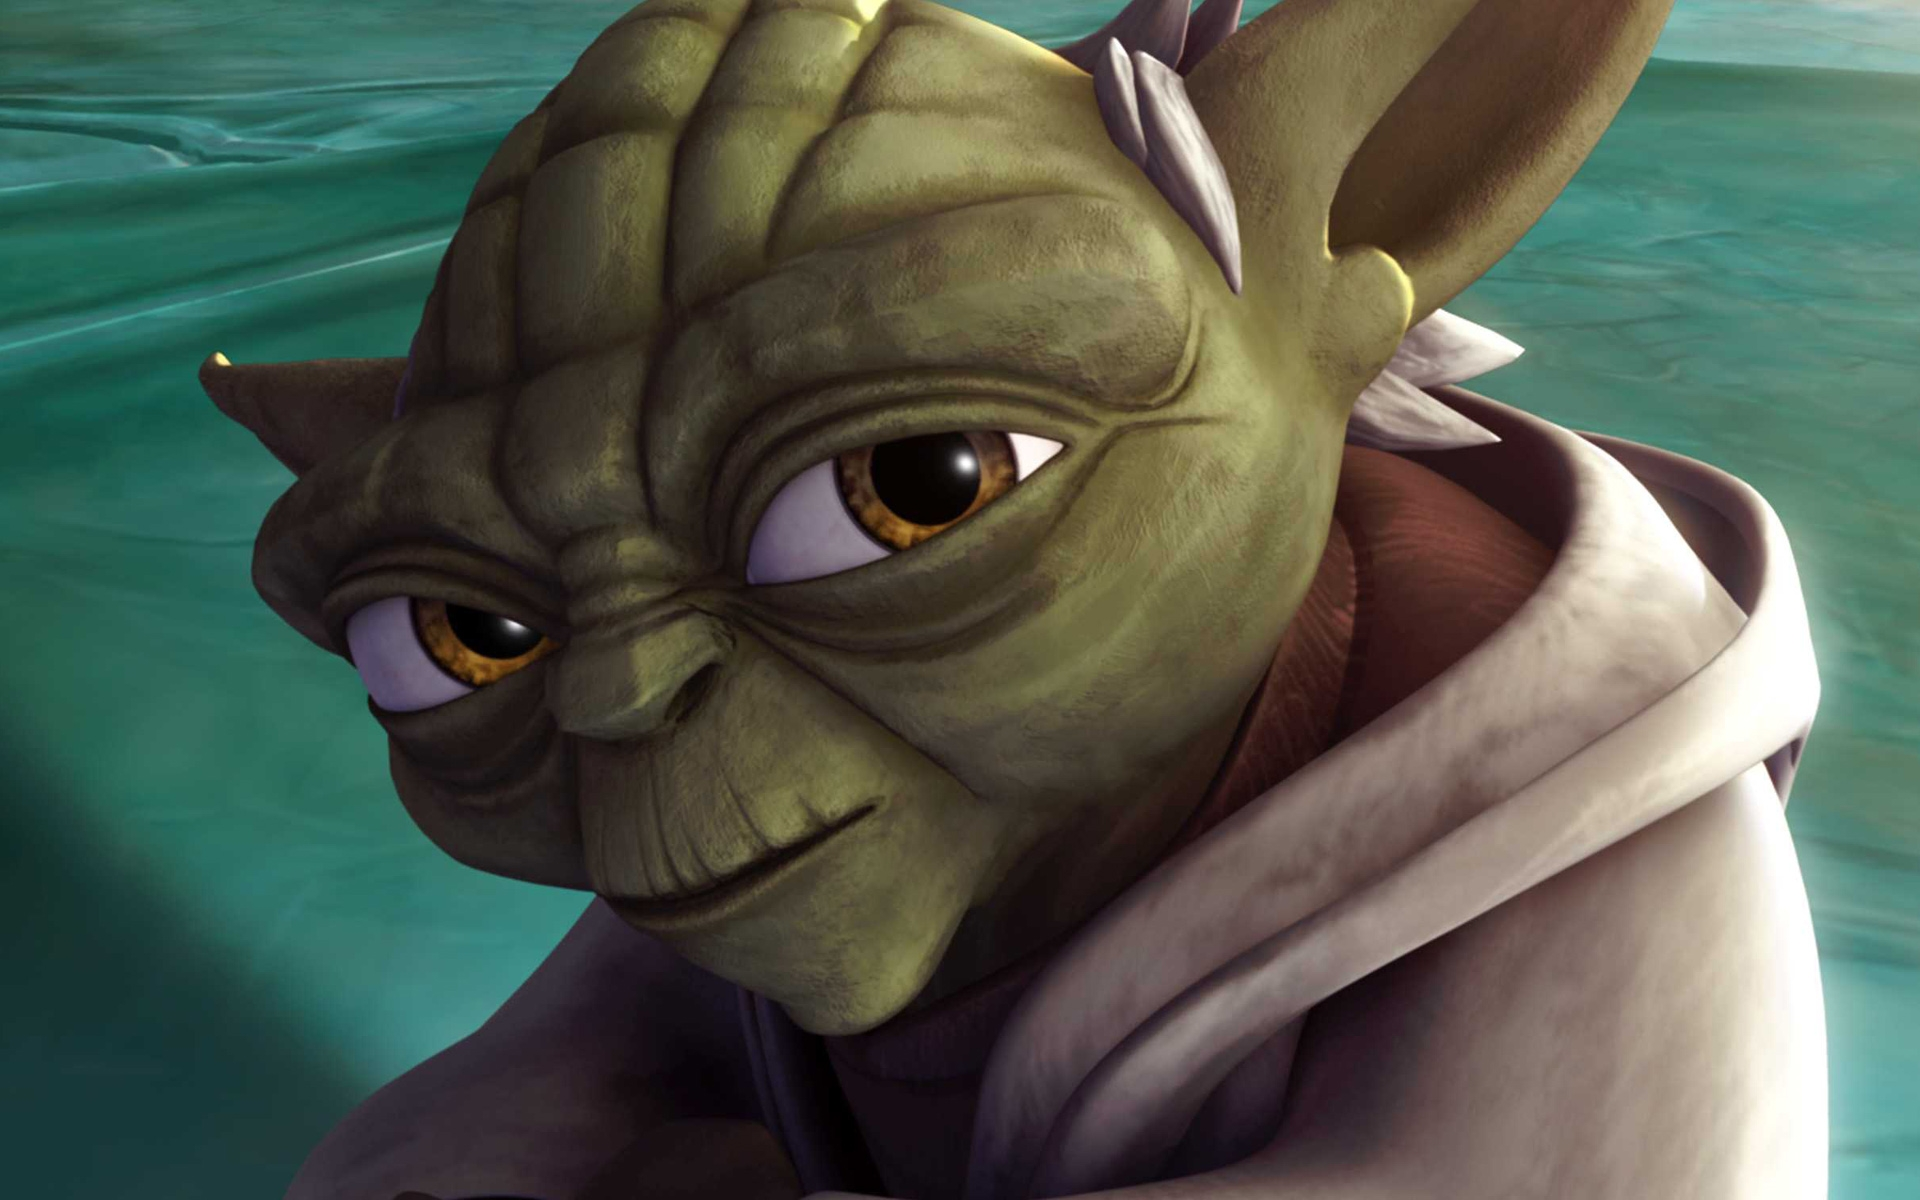 Wallpaper hd del Maestro Yoda